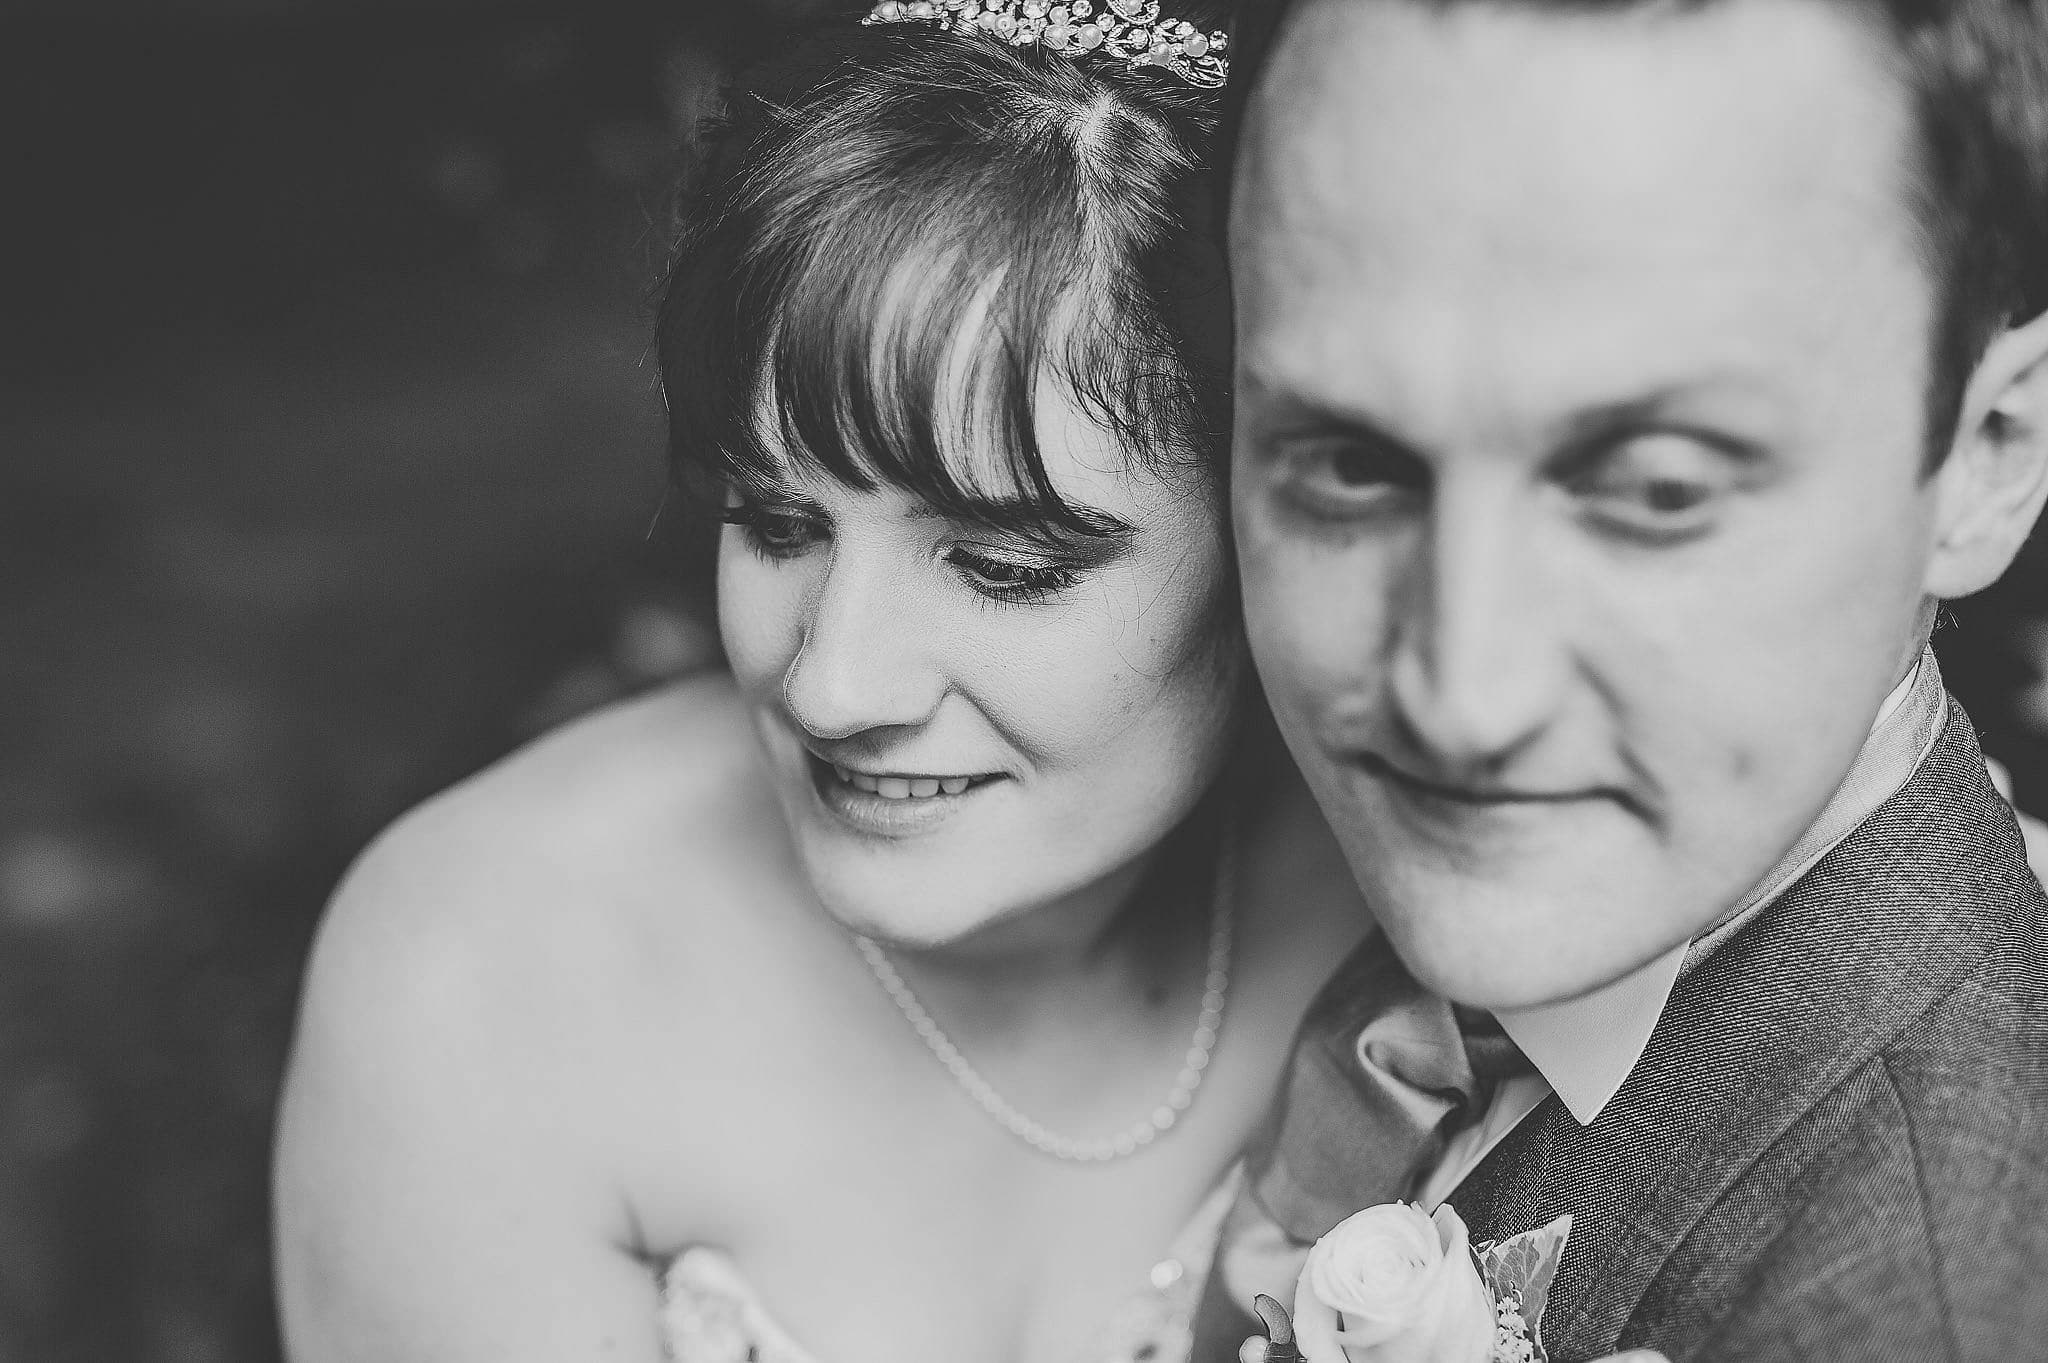 wedding photography midlands 74 - Midlands wedding photography - 2015 Review